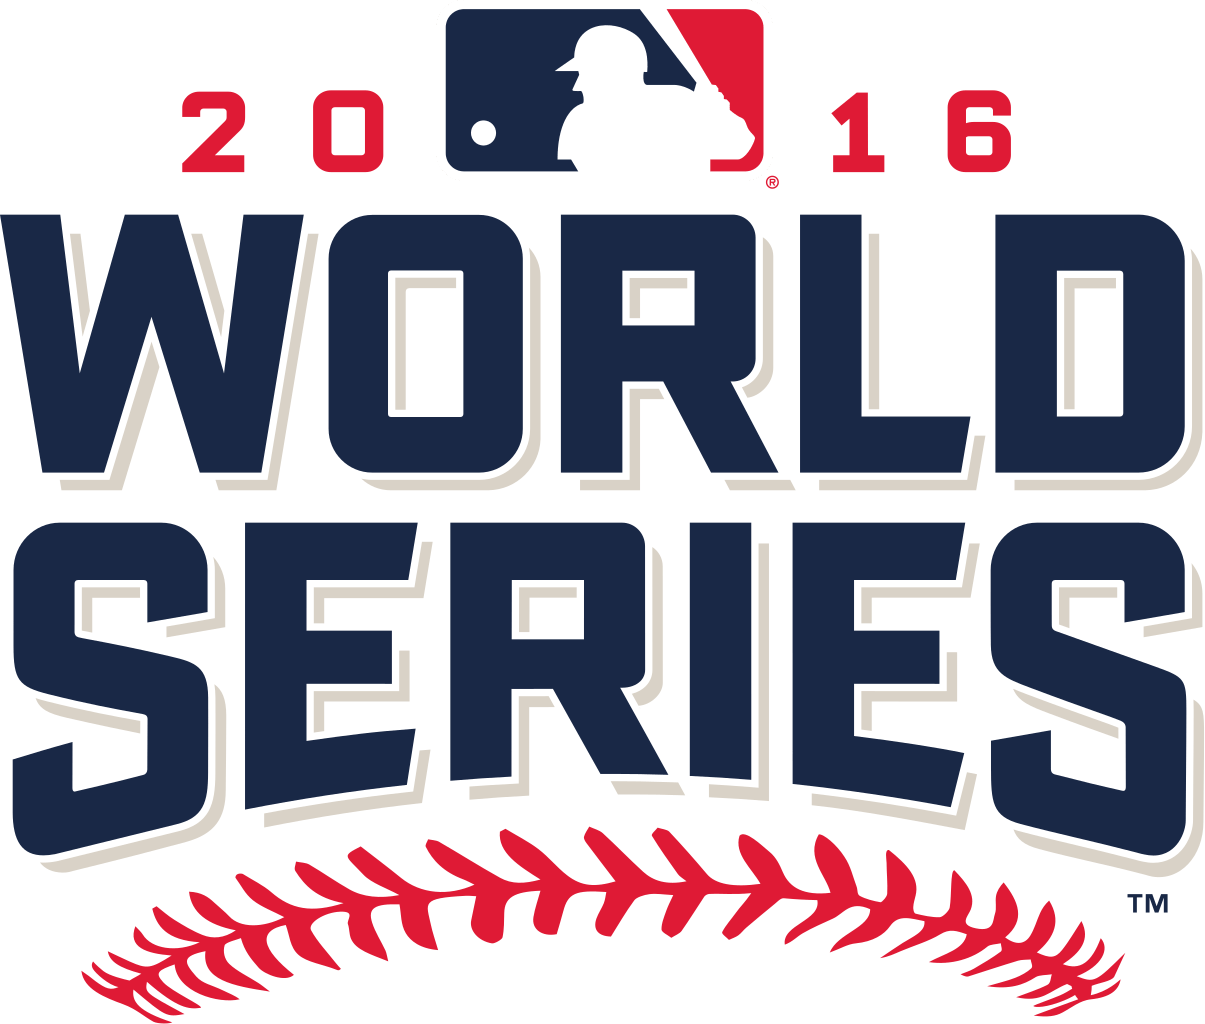 How To Go To The World Series For Free In 2020 Chicago Cubs World Series Mlb World Series Cubs World Series